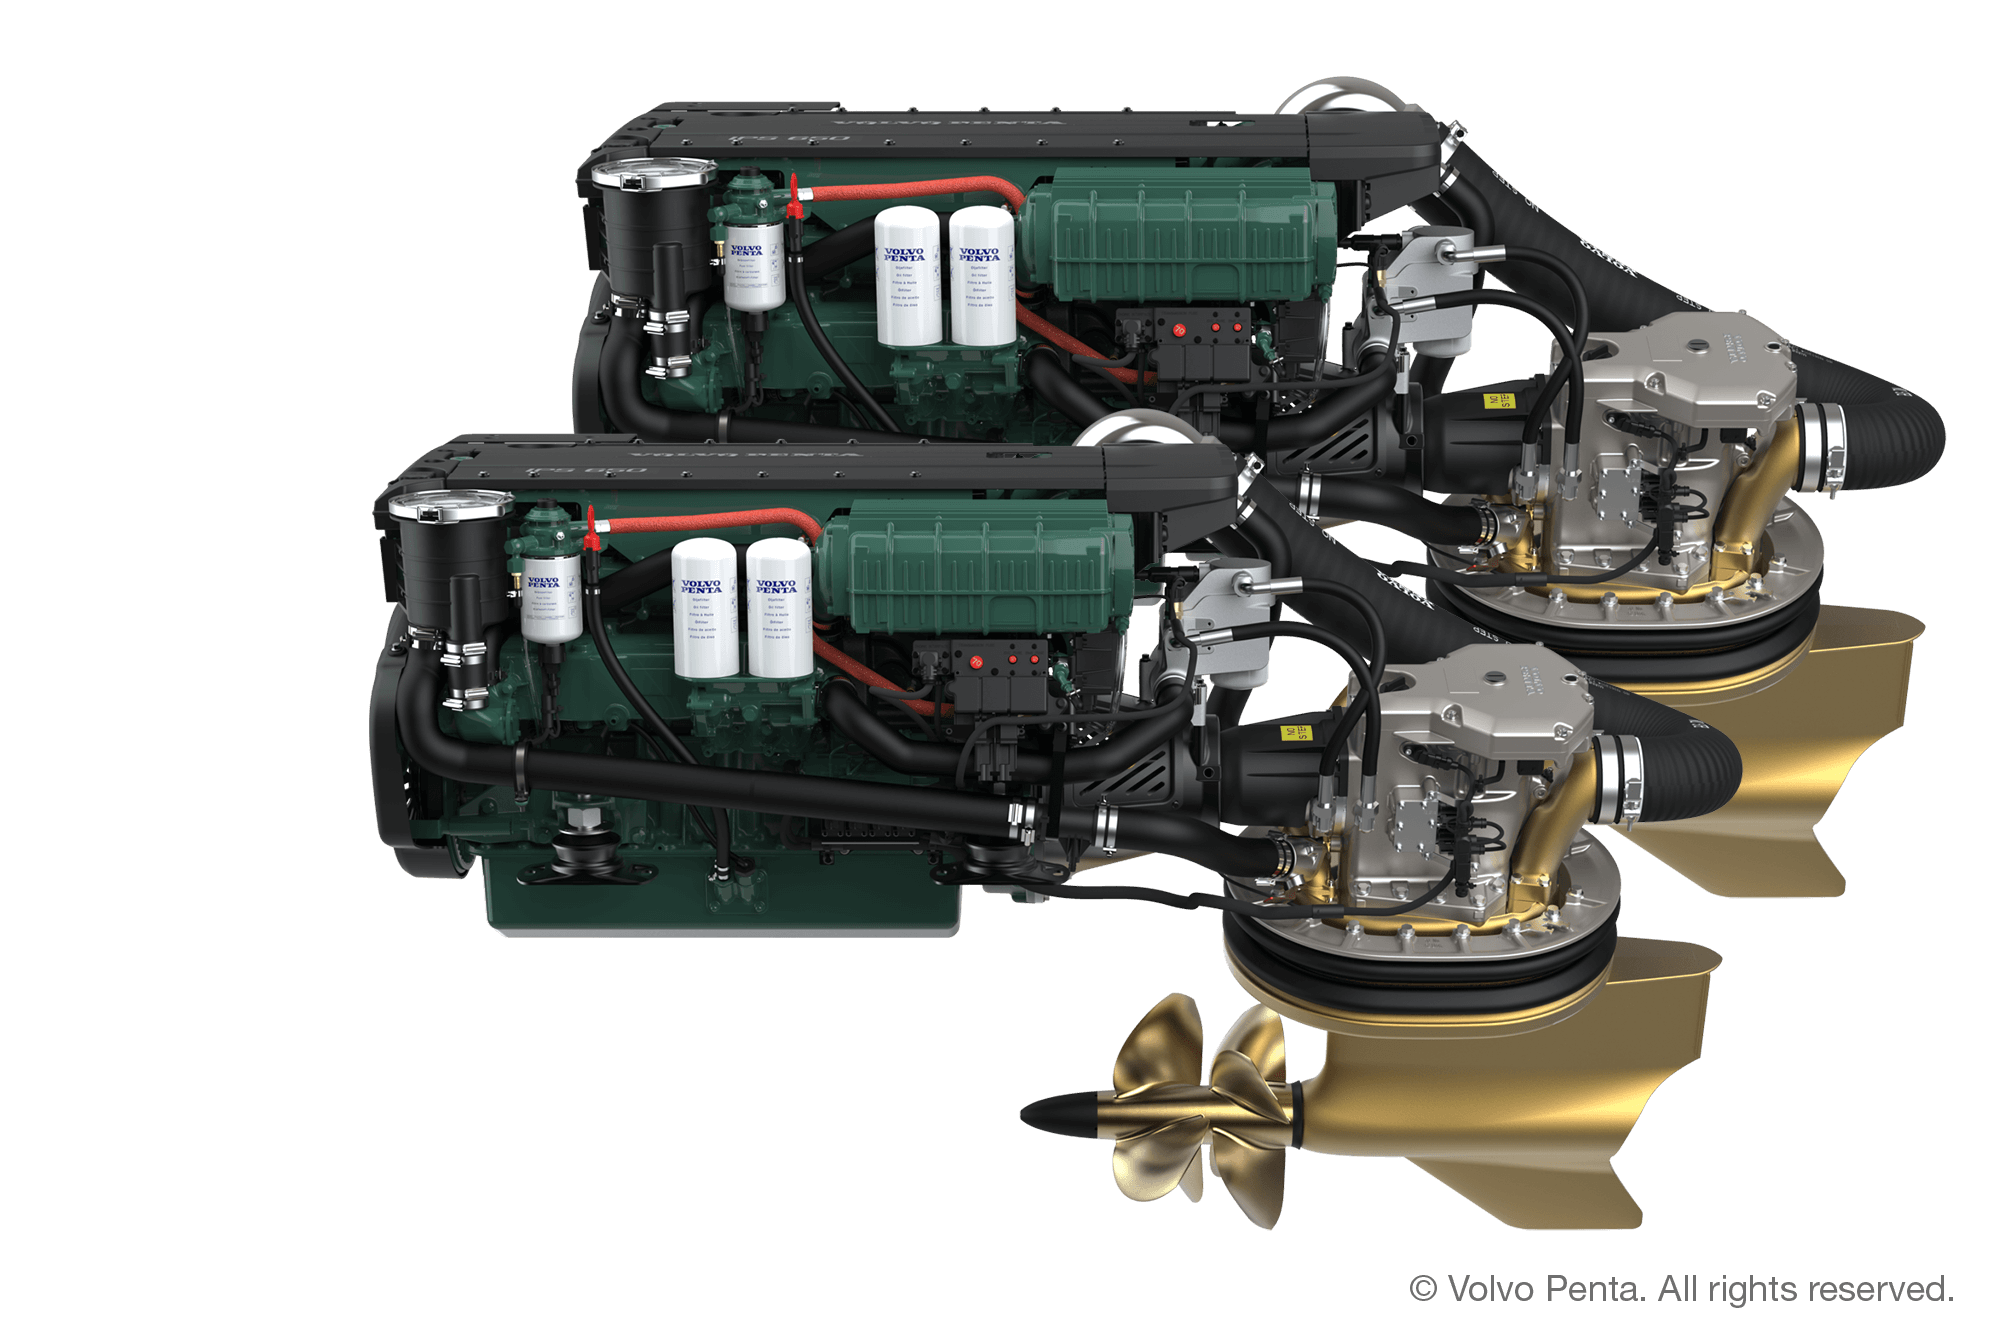 2 Volvo Penta IPS450 (340 hp) - Pod drive with propeller T4